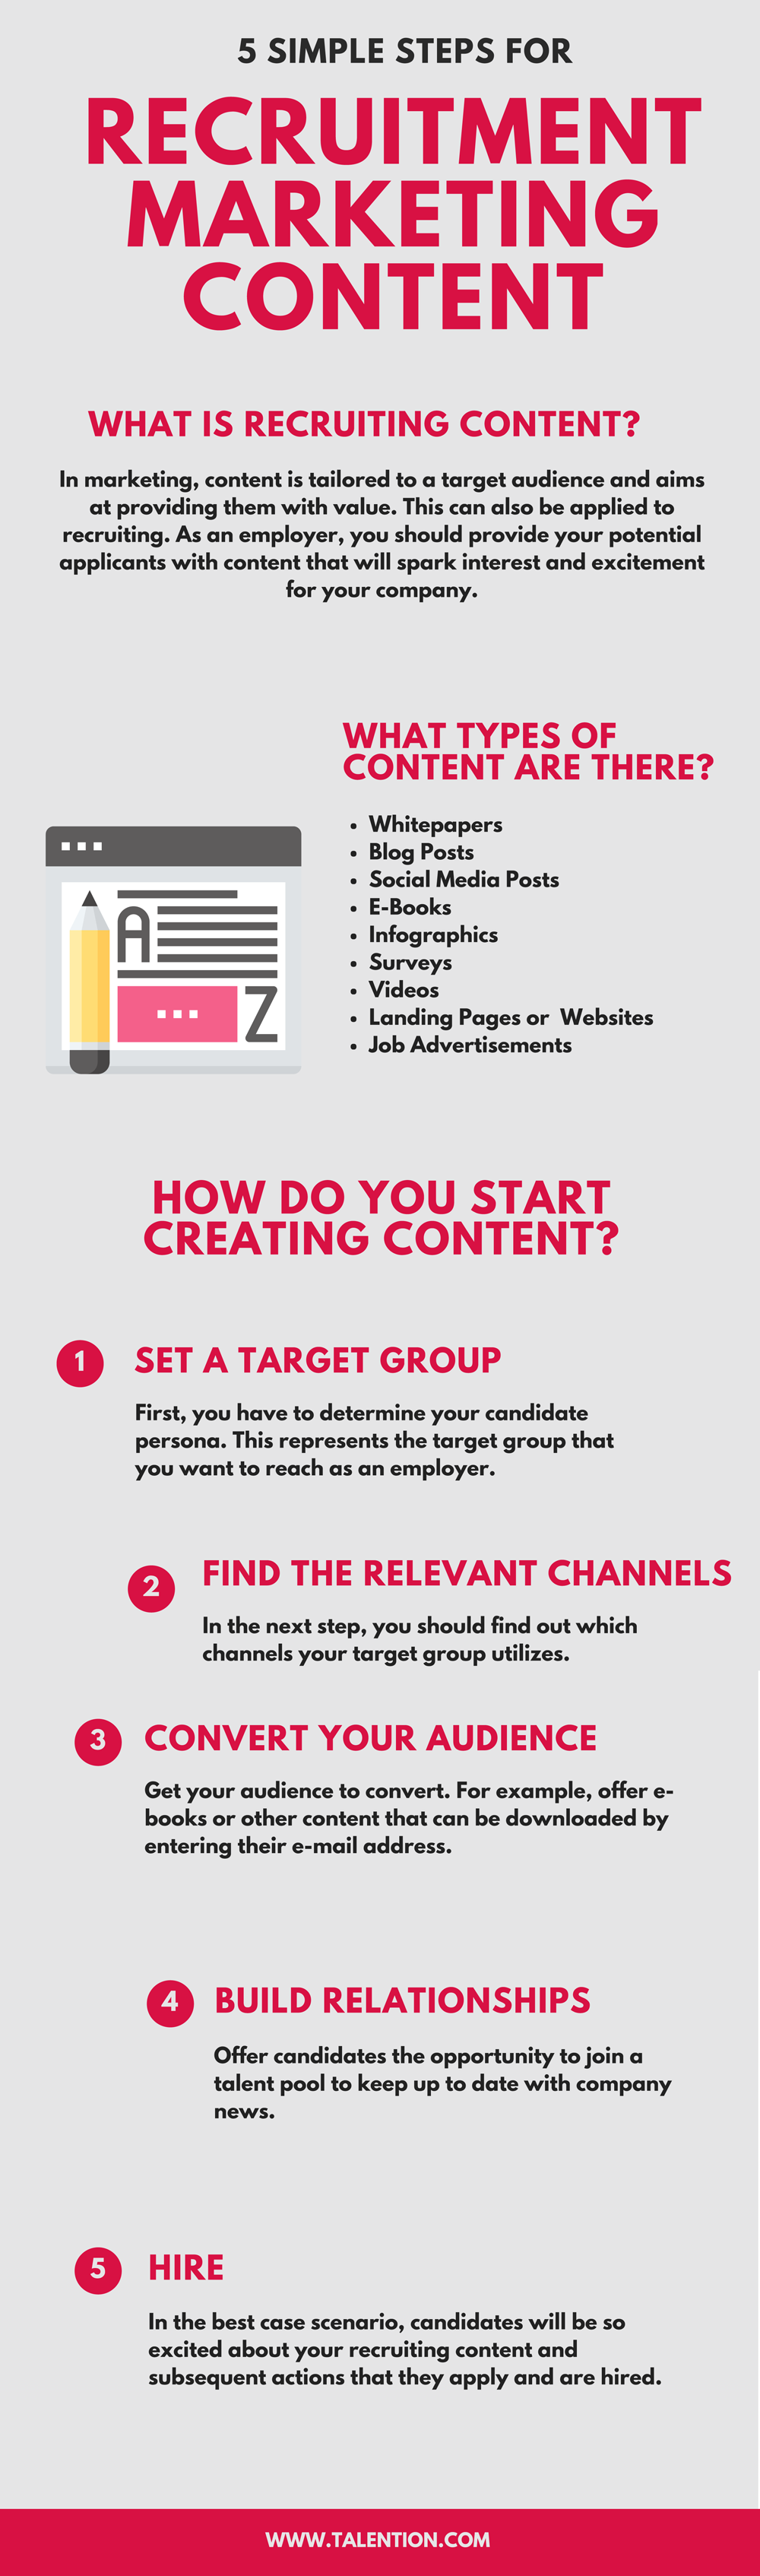 5 Simple Steps for Recruitment Marketing Content Infographic